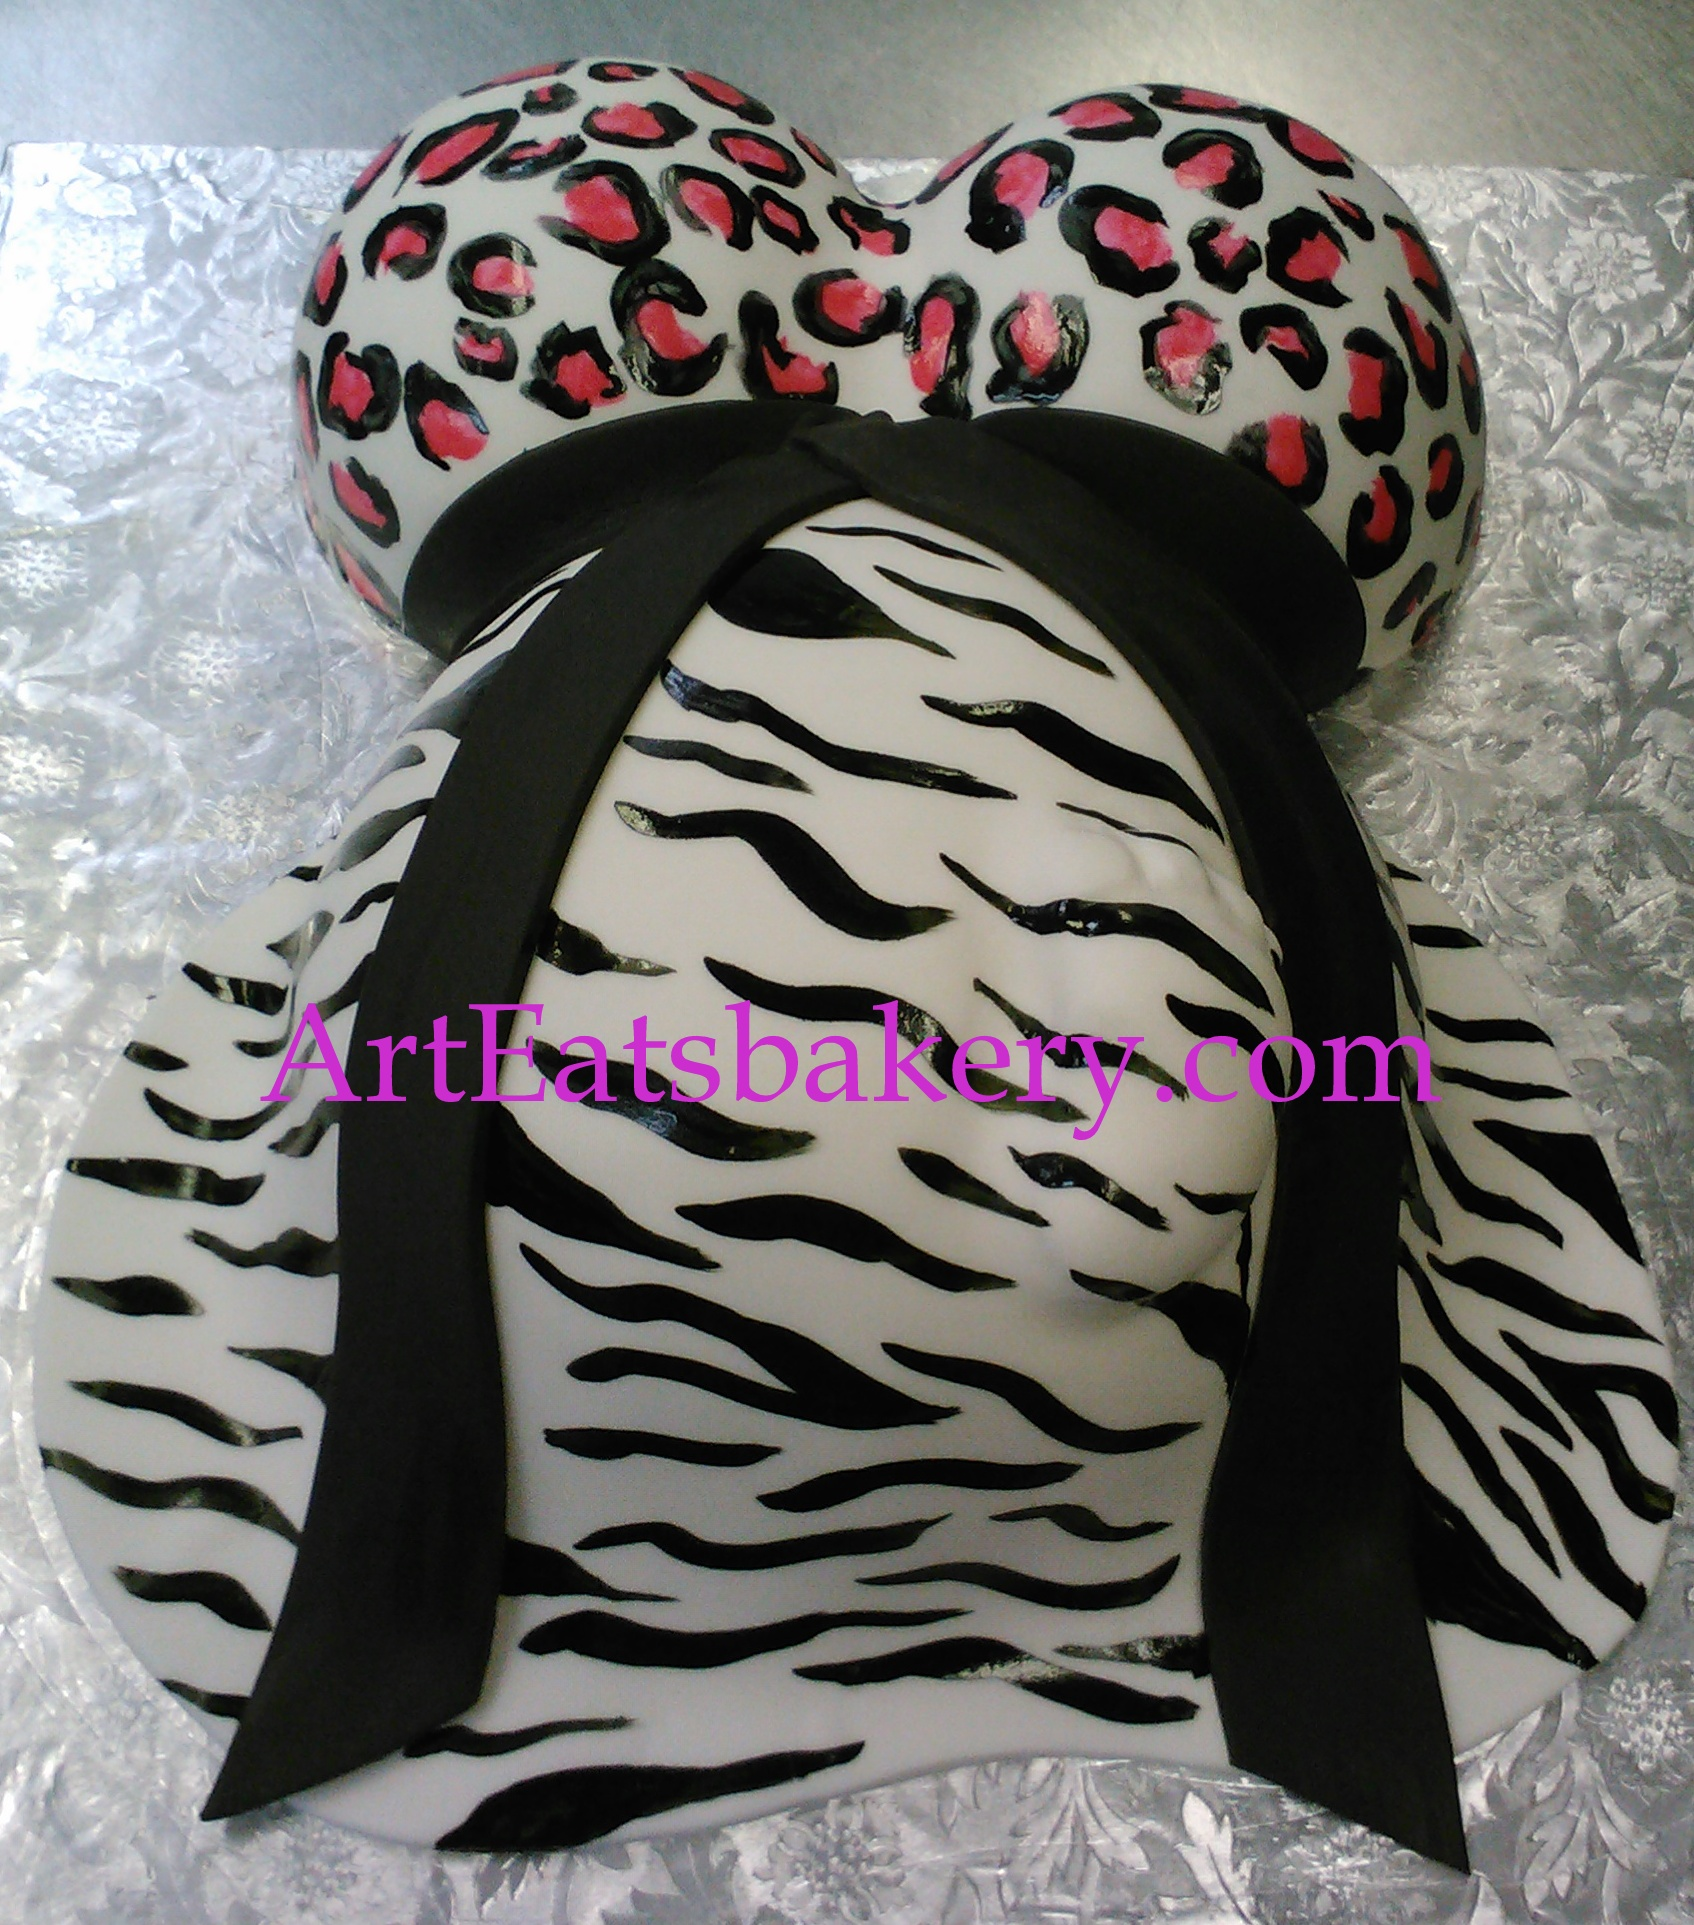 Zebra and cheetah print black, pink and white baby bump baby shower cake design.jpg